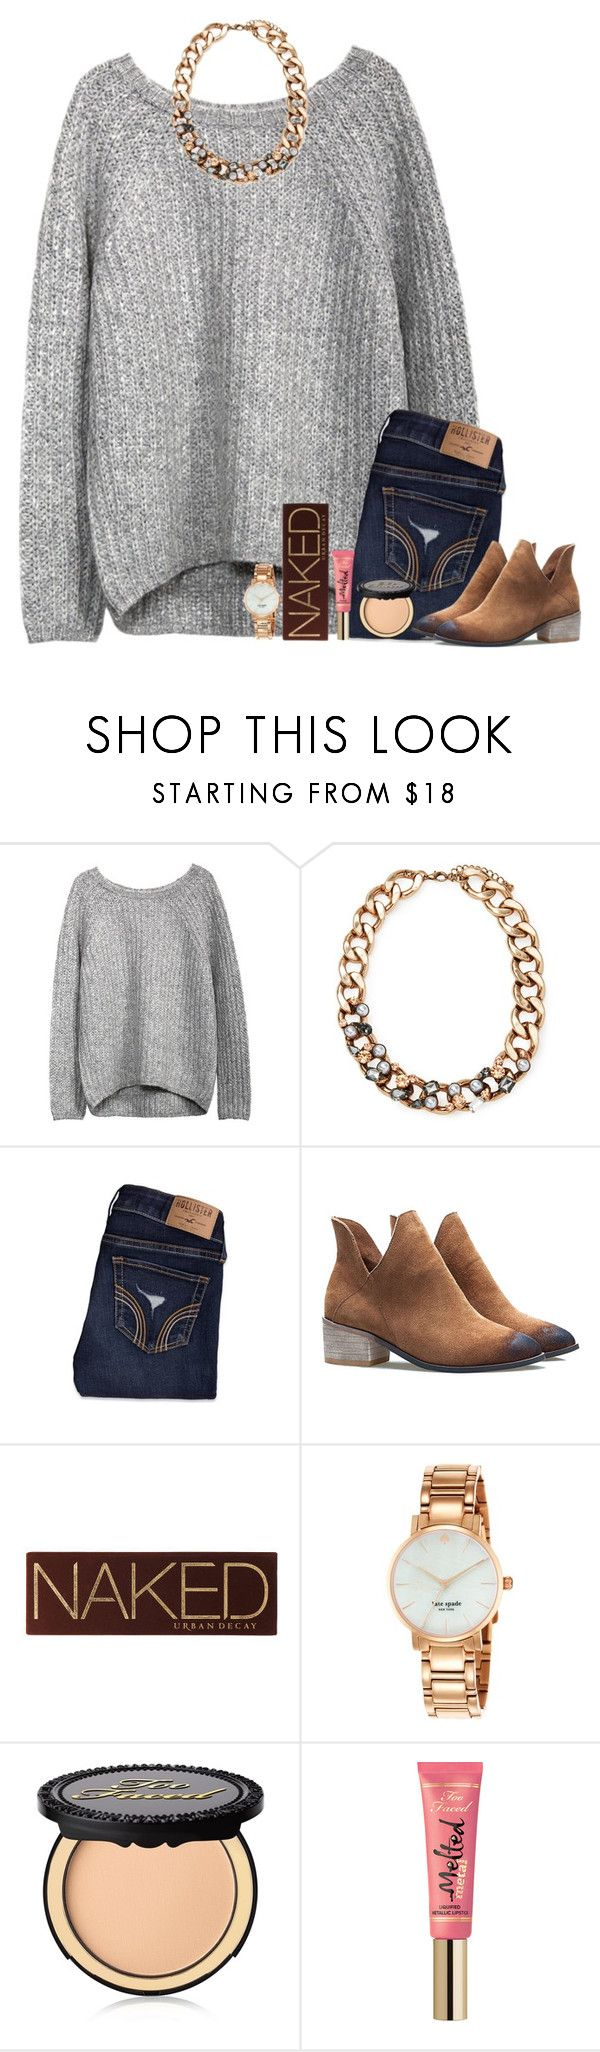 """""""#katiestrong   read d!"""" by bloom17 ❤ liked on Polyvore featuring Forever 21, Hollister Co., Urban Decay, Kate Spade, Too Faced Cosmetics, women's clothing, women's fashion, women, female and woman"""